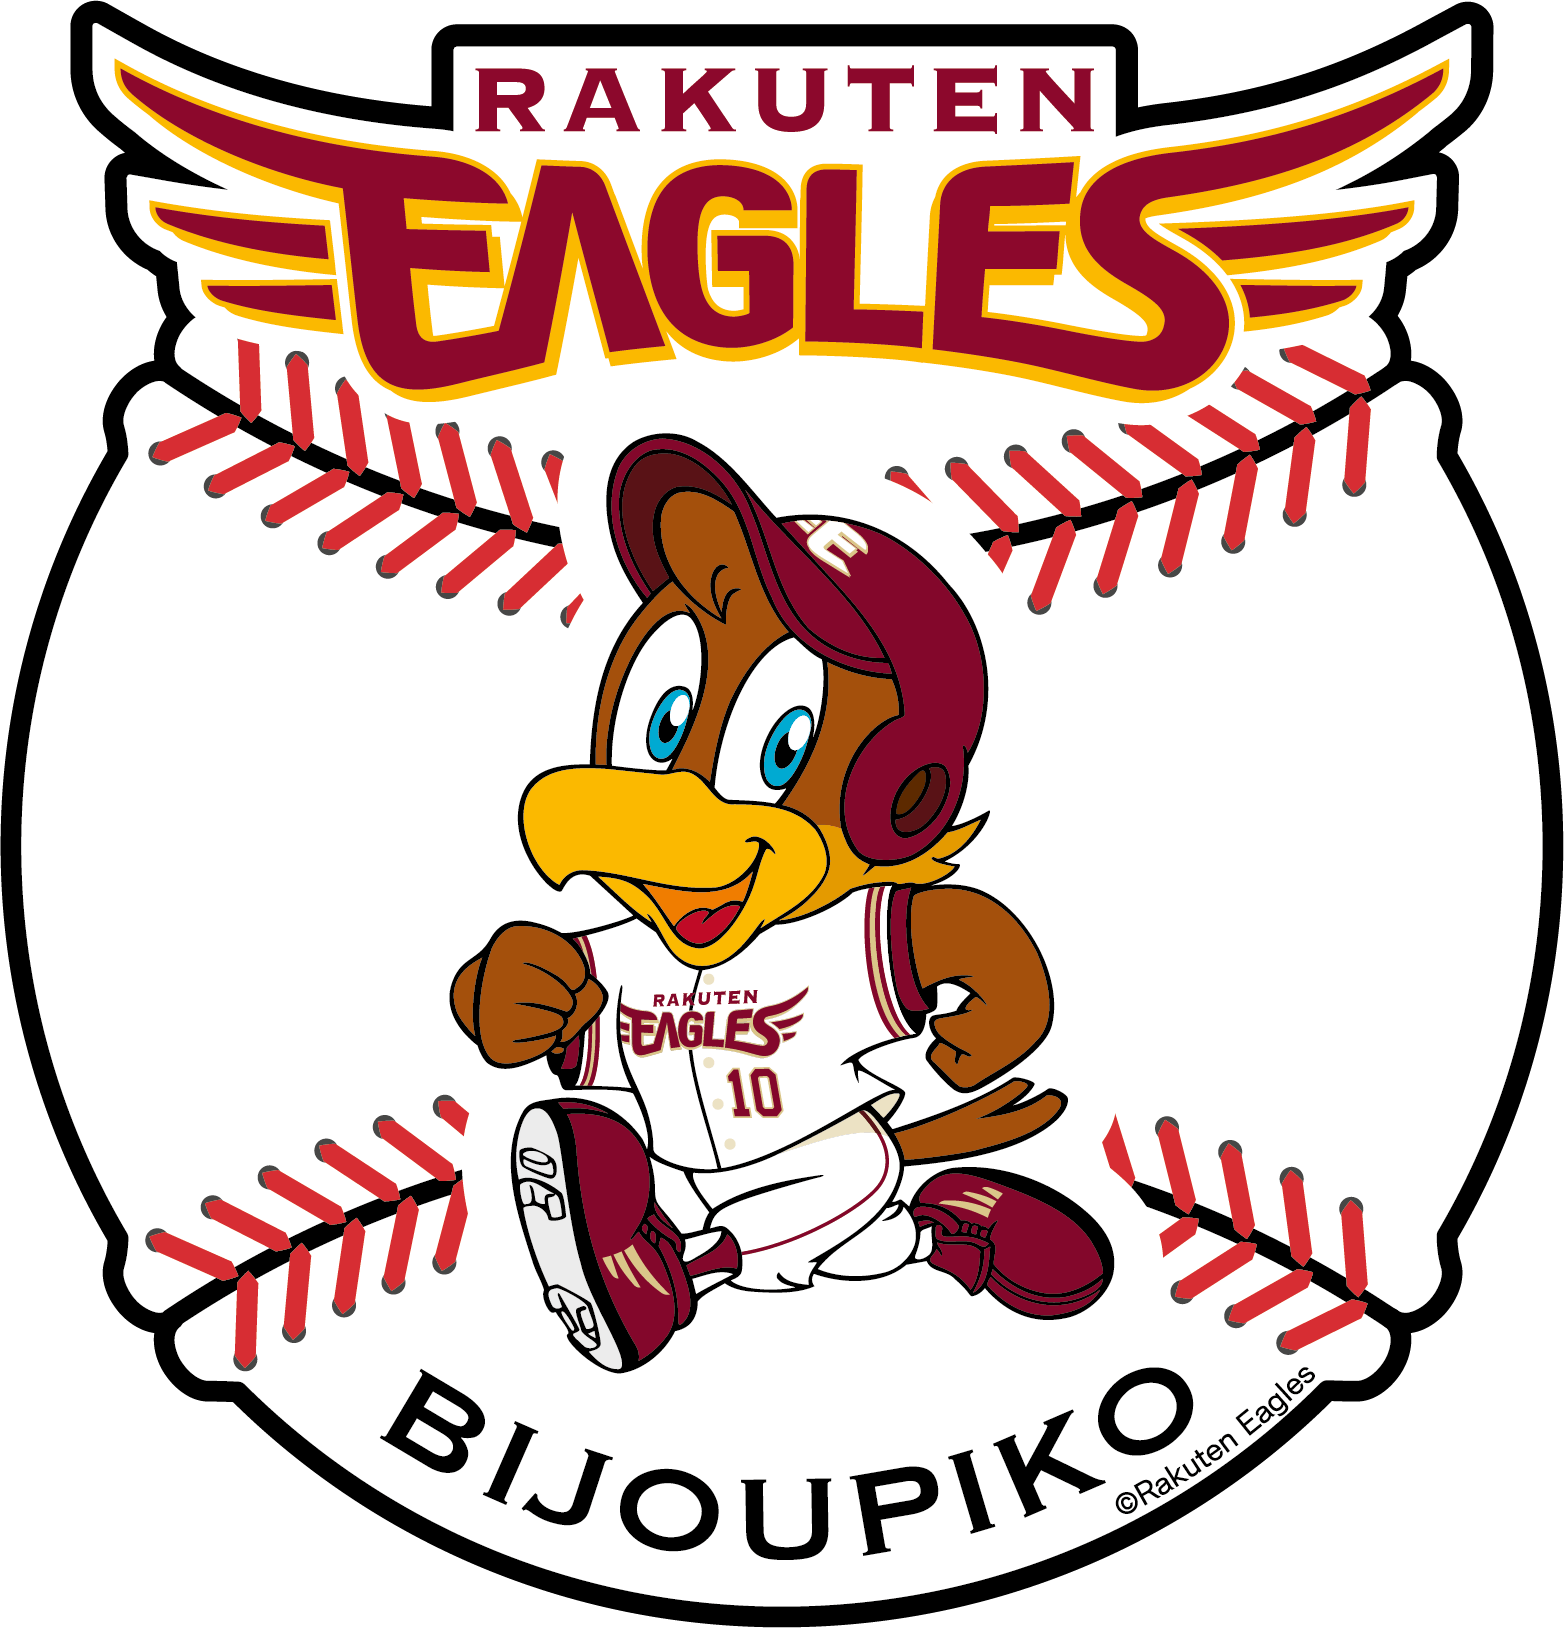 Bijoupiko fighters character